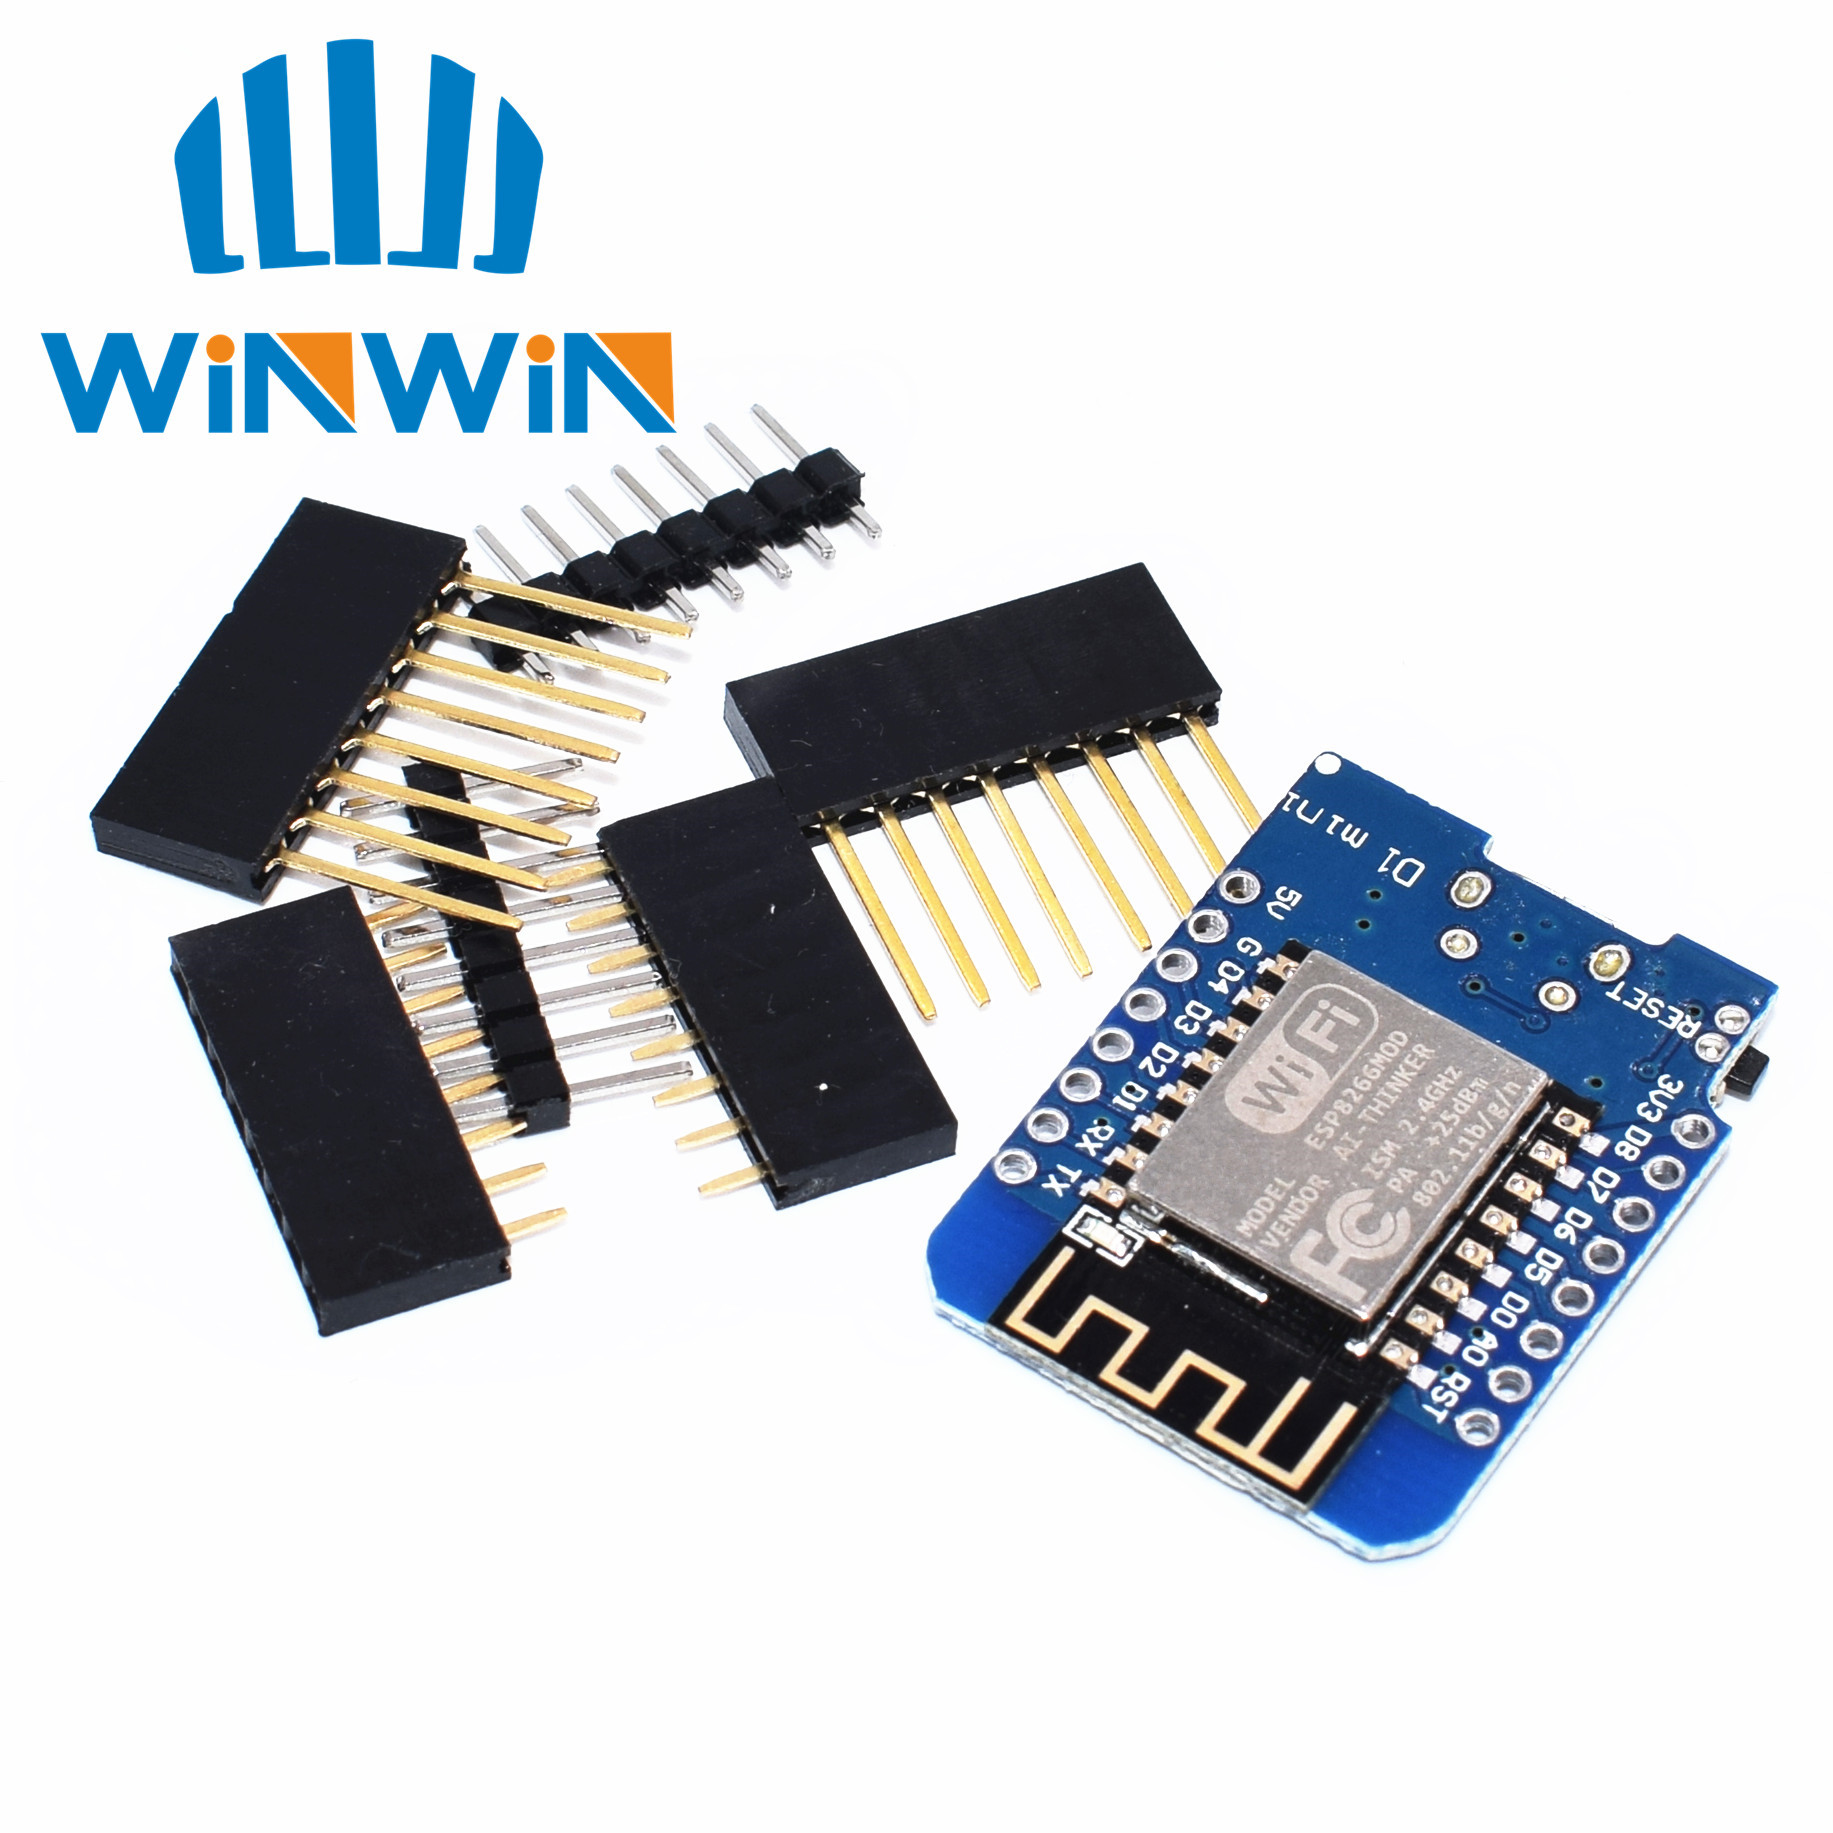 ESP8266 ESP-12 ESP-12F CH340G CH340 V2 USB WeMos D1 Mini WIFI Development Board D1 Mini NodeMCU Lua IOT Board 3.3V With Pins